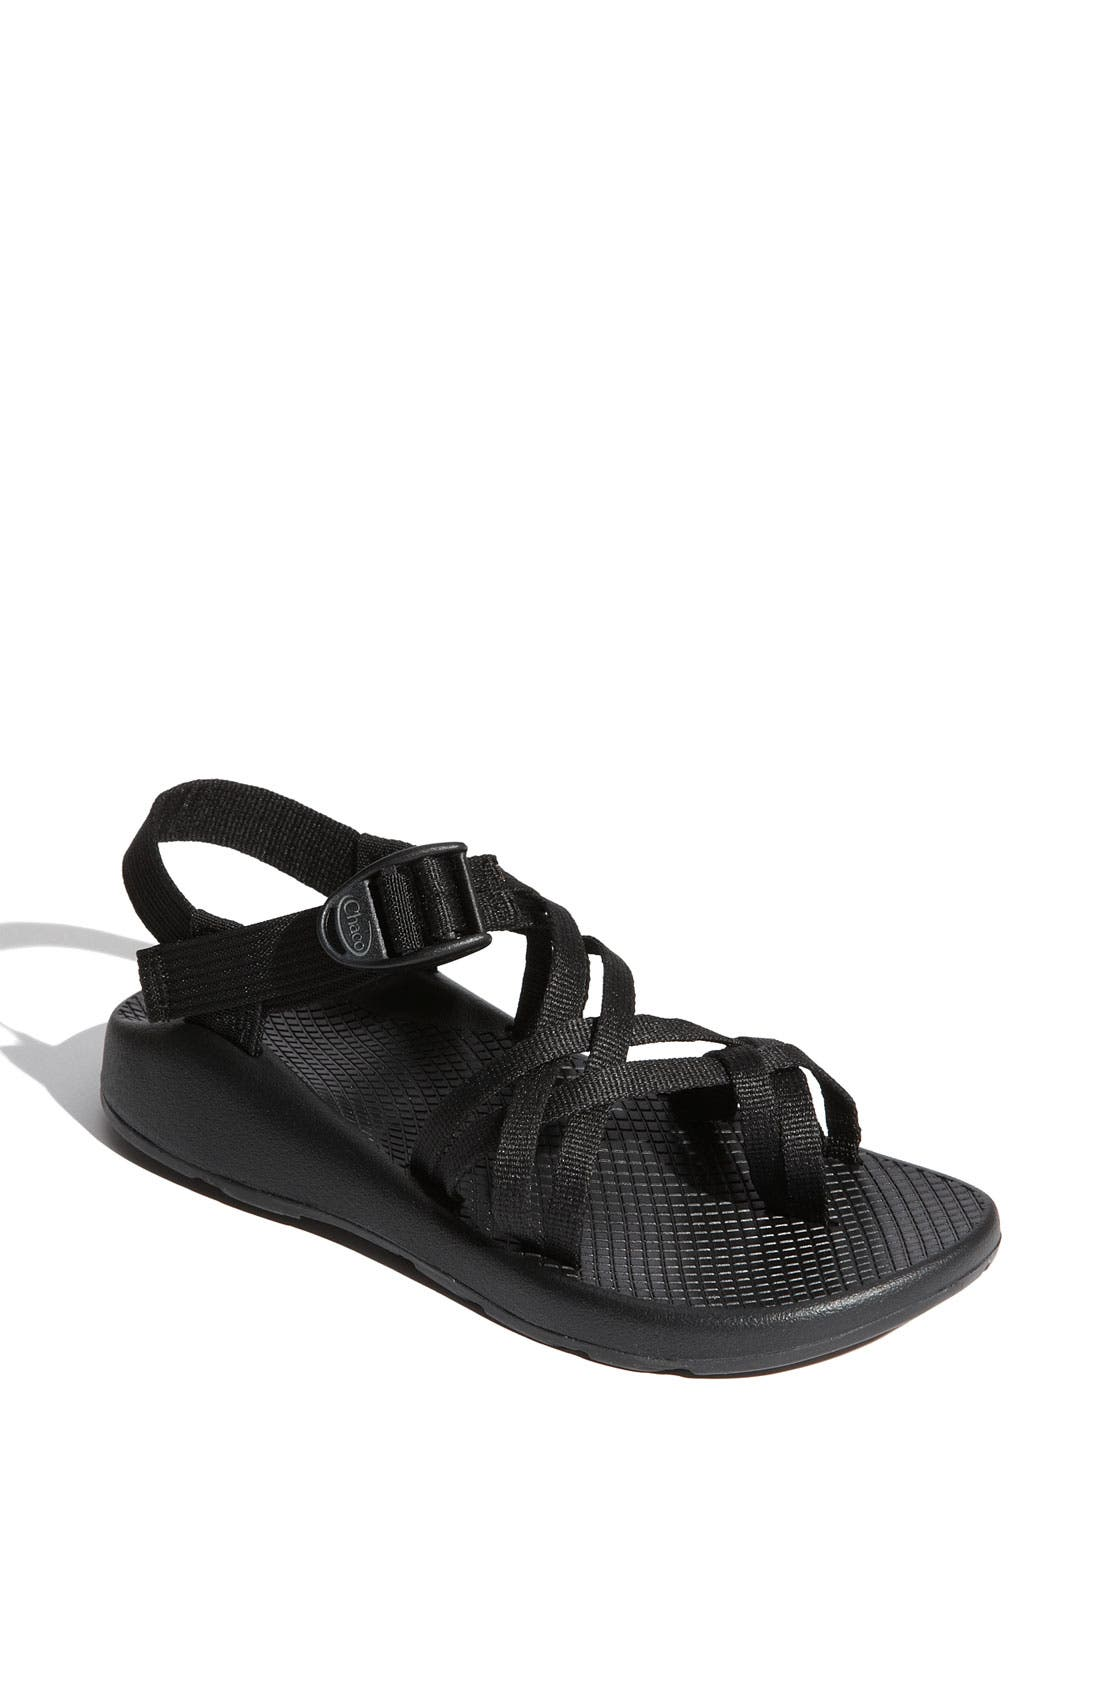 Alternate Image 1 Selected - Chaco 'ZX2' Water Sandal